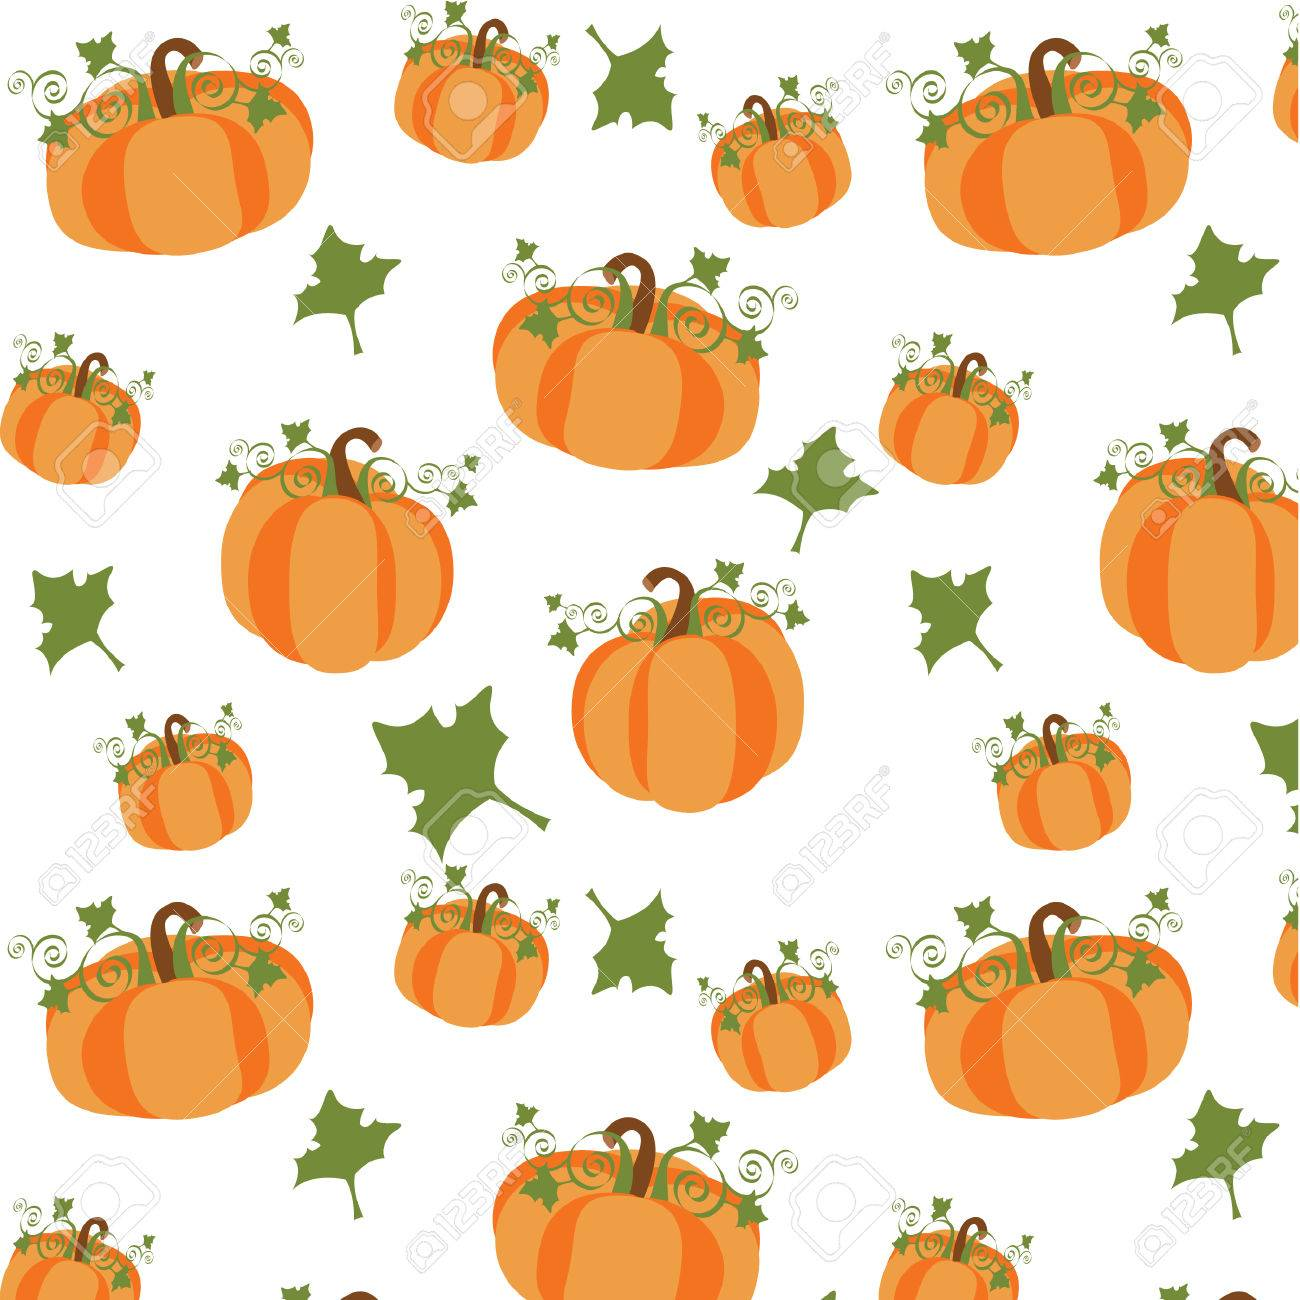 Halloween Pumpkin Background Royalty Free Cliparts Vectors And Stock Illustration Image 78454671